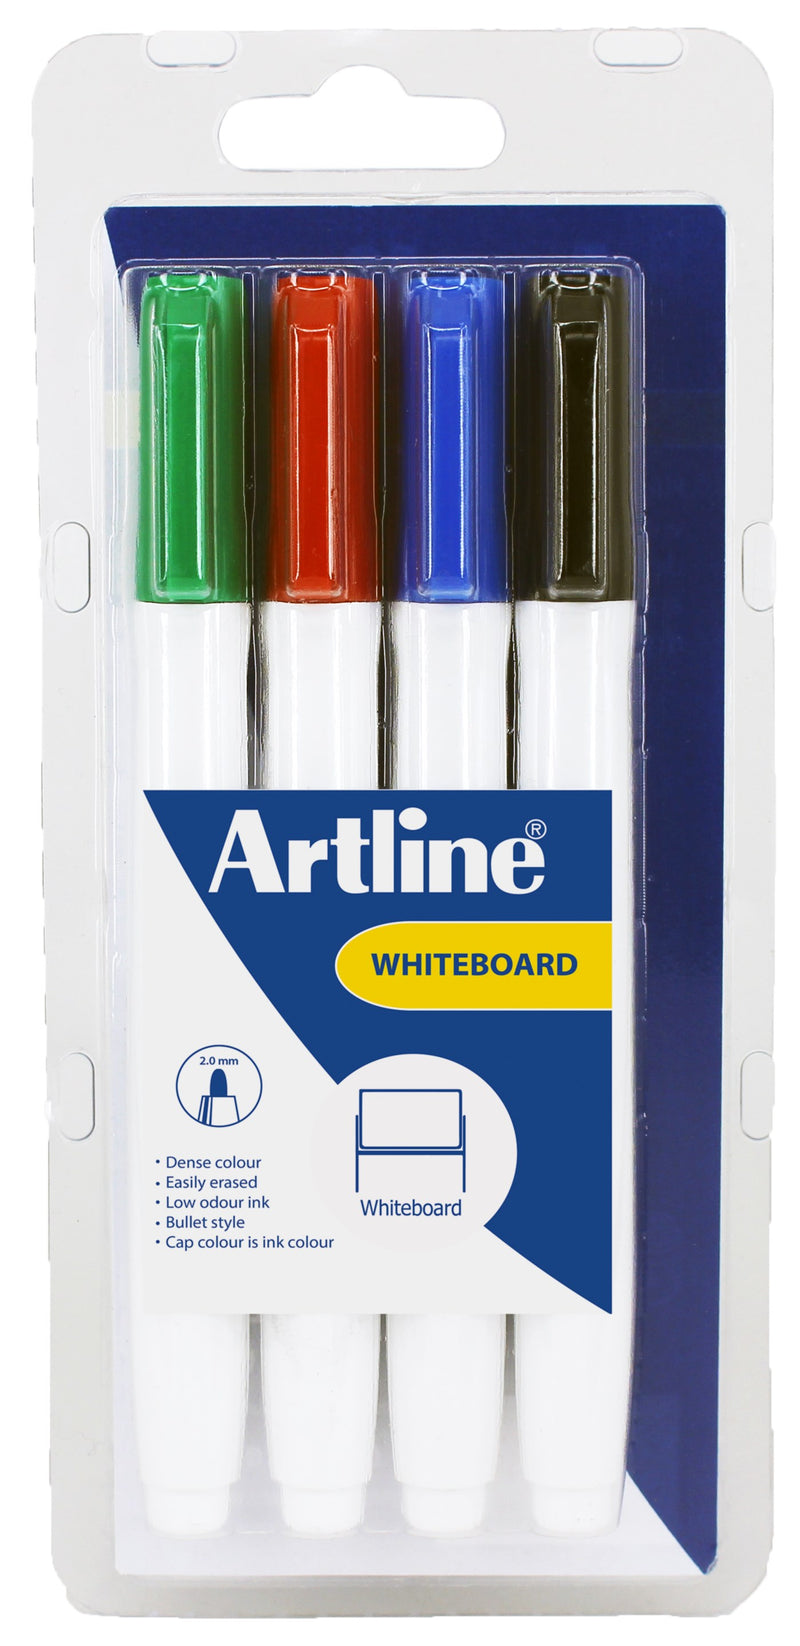 Artline Supreme Whiteboard 4-Pack Ass